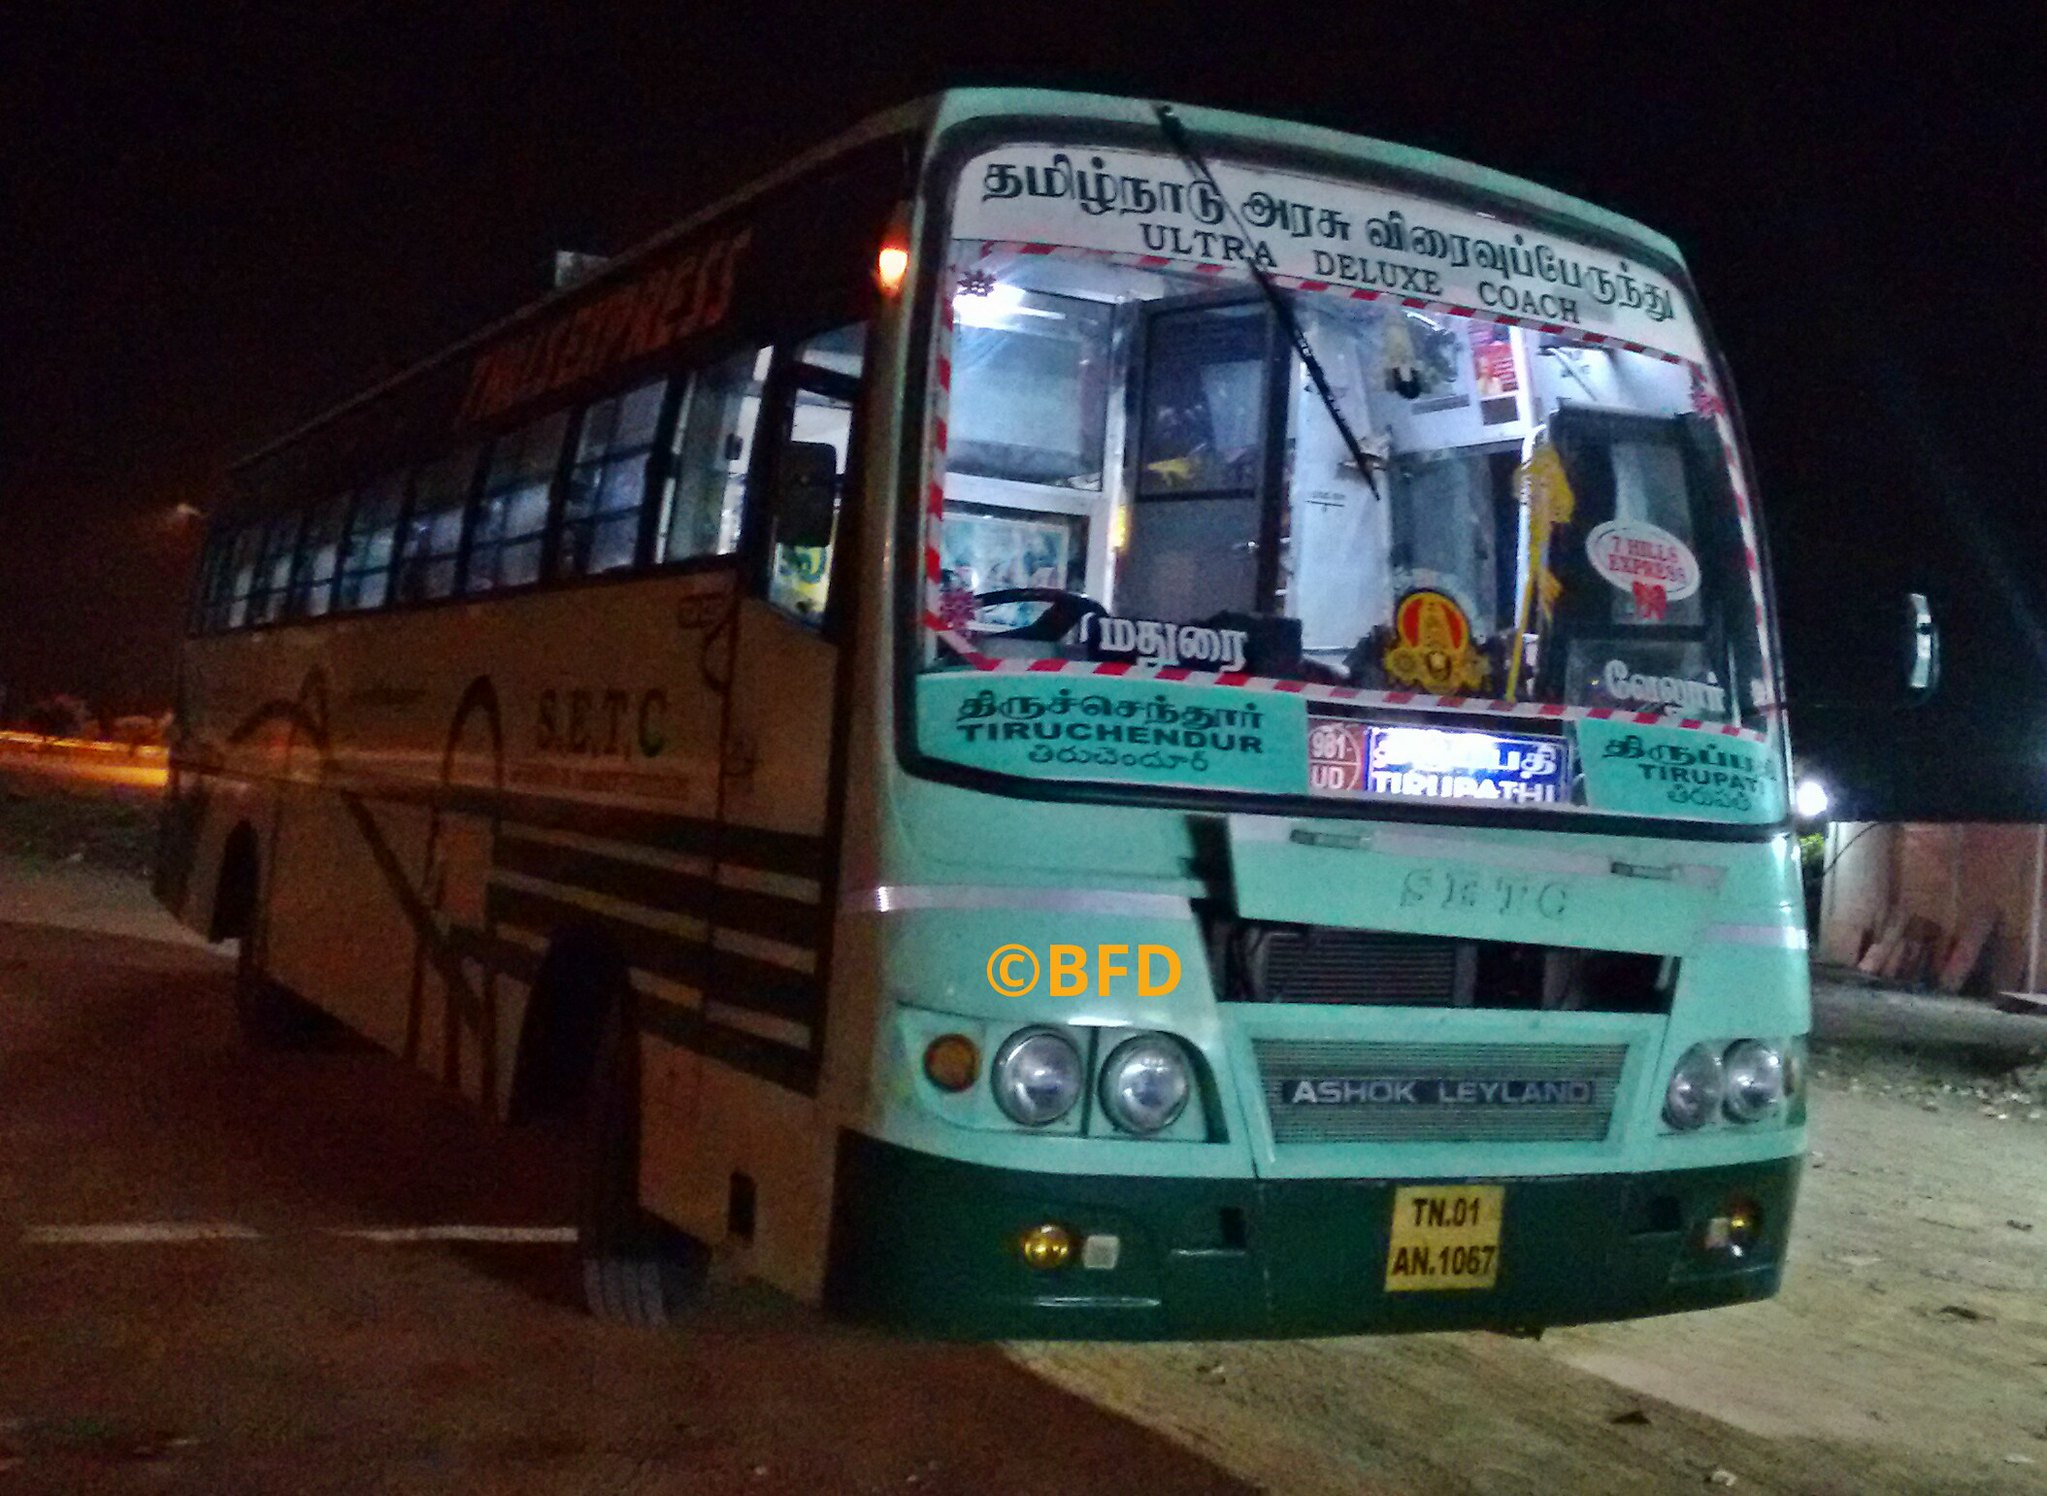 tamil nadu buses - photos & discussion - page 2529 - skyscrapercity